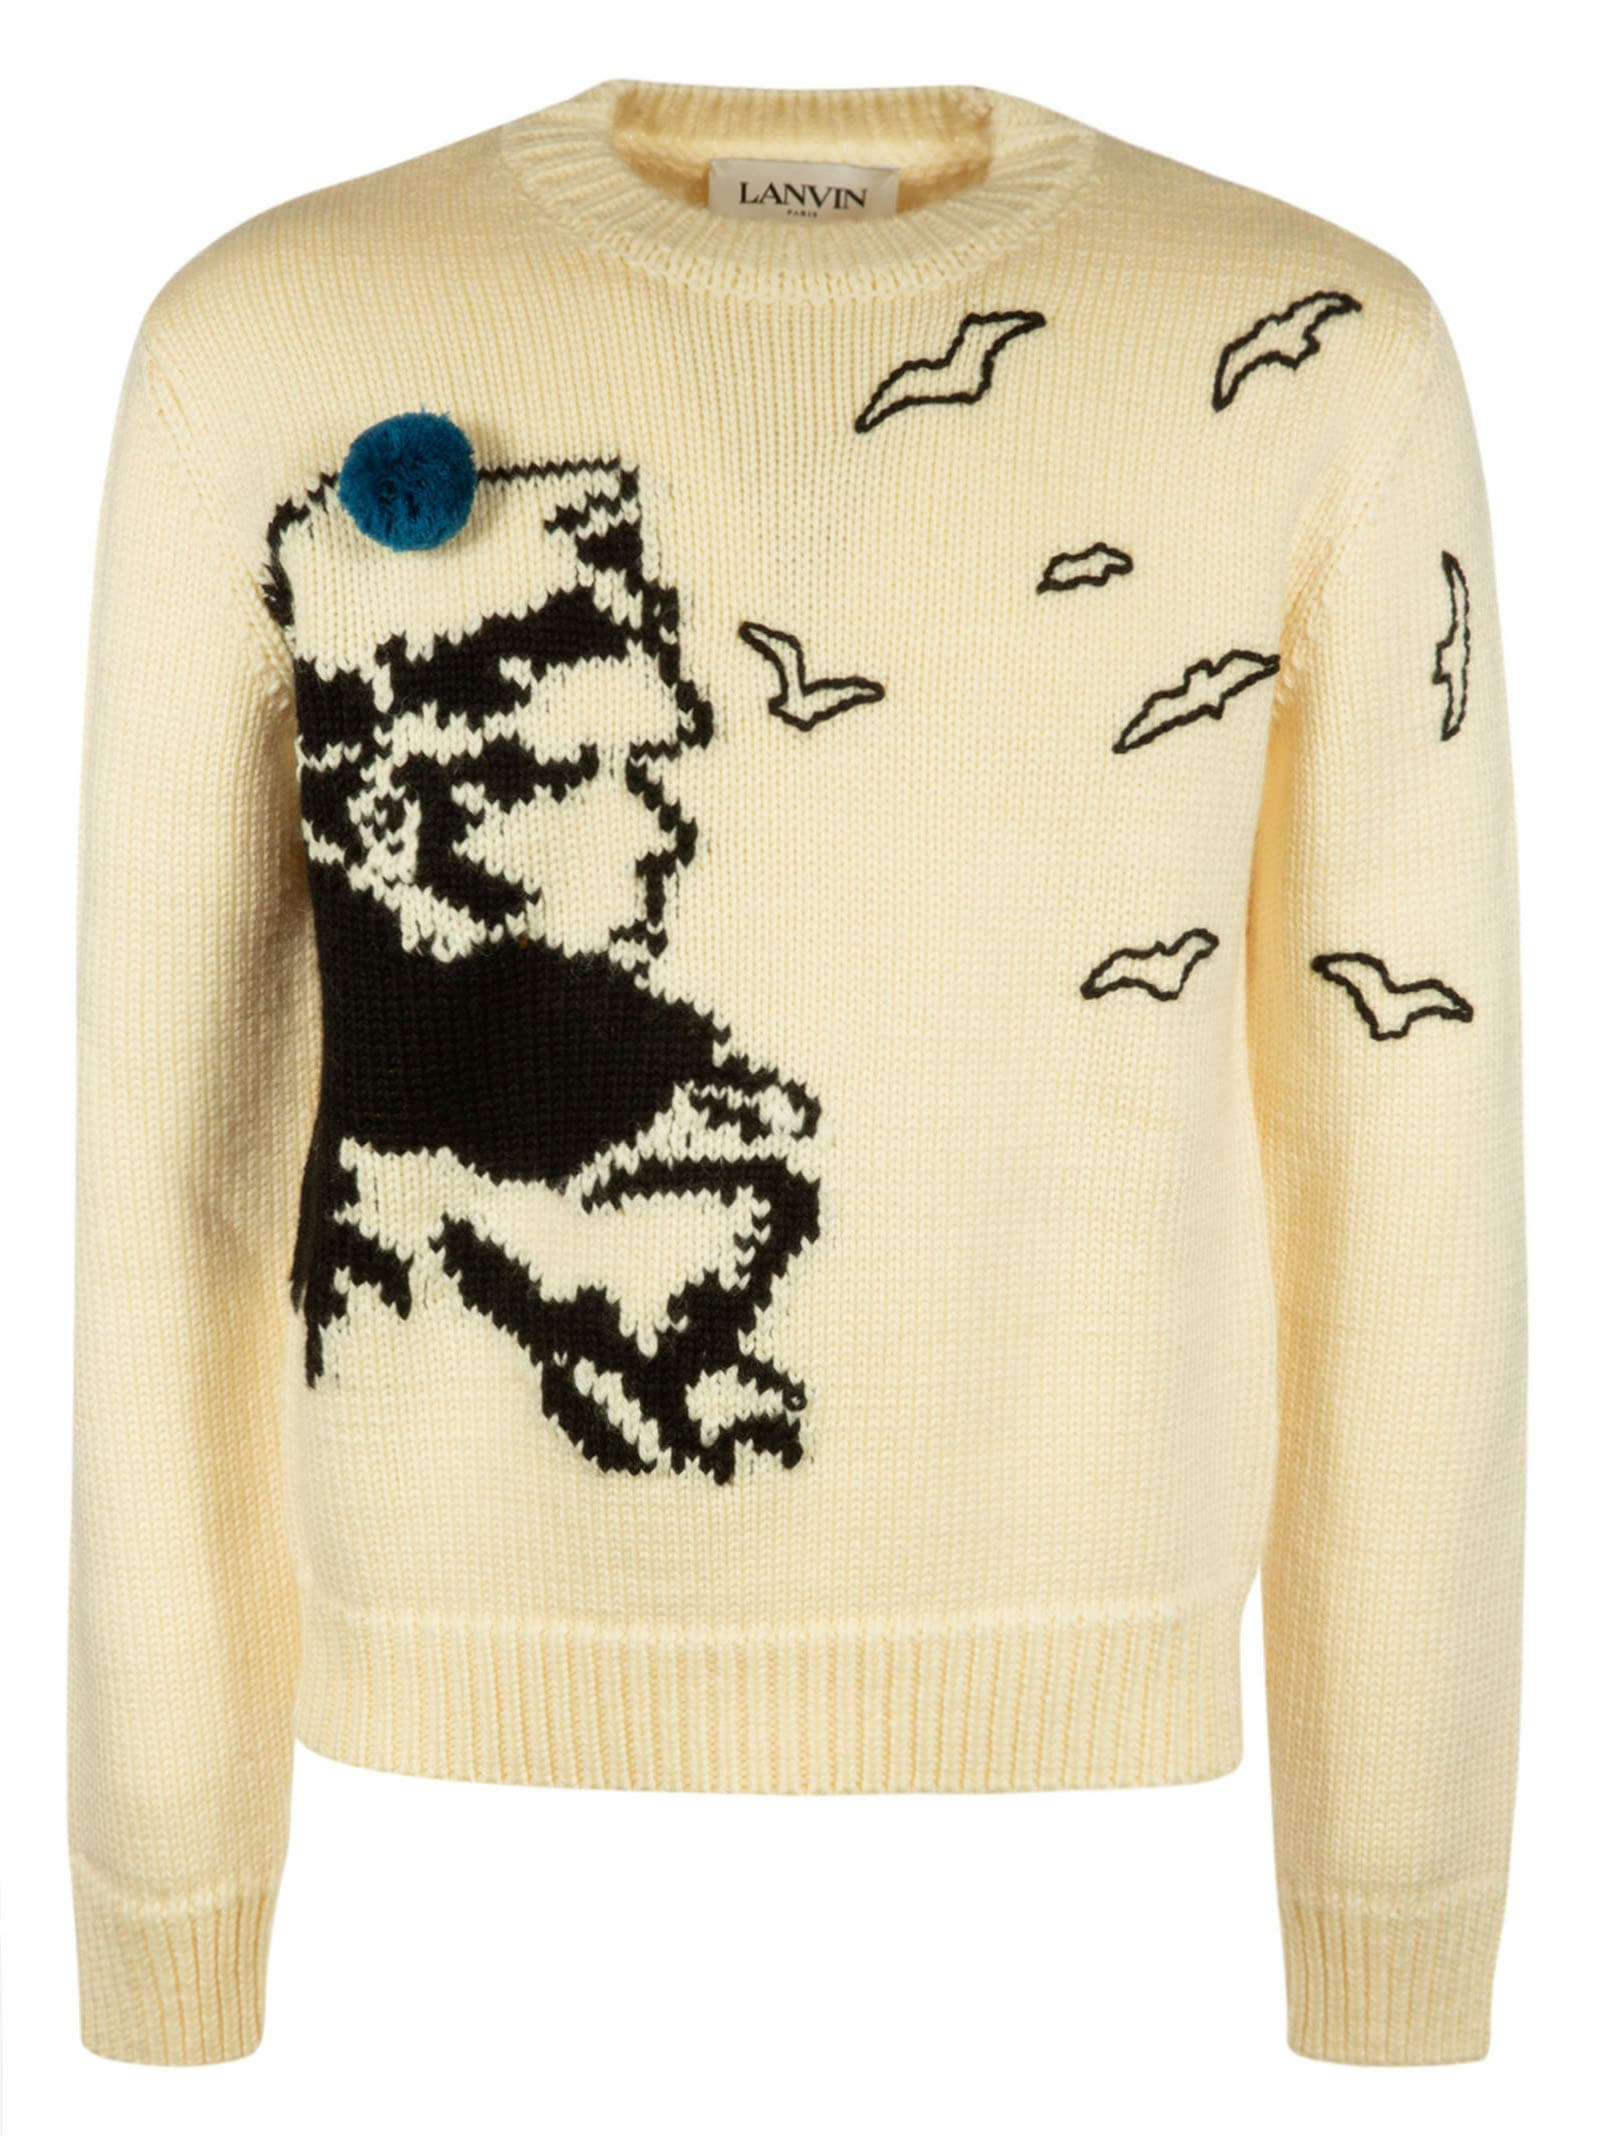 Lanvin Knit Embroidered Sweater